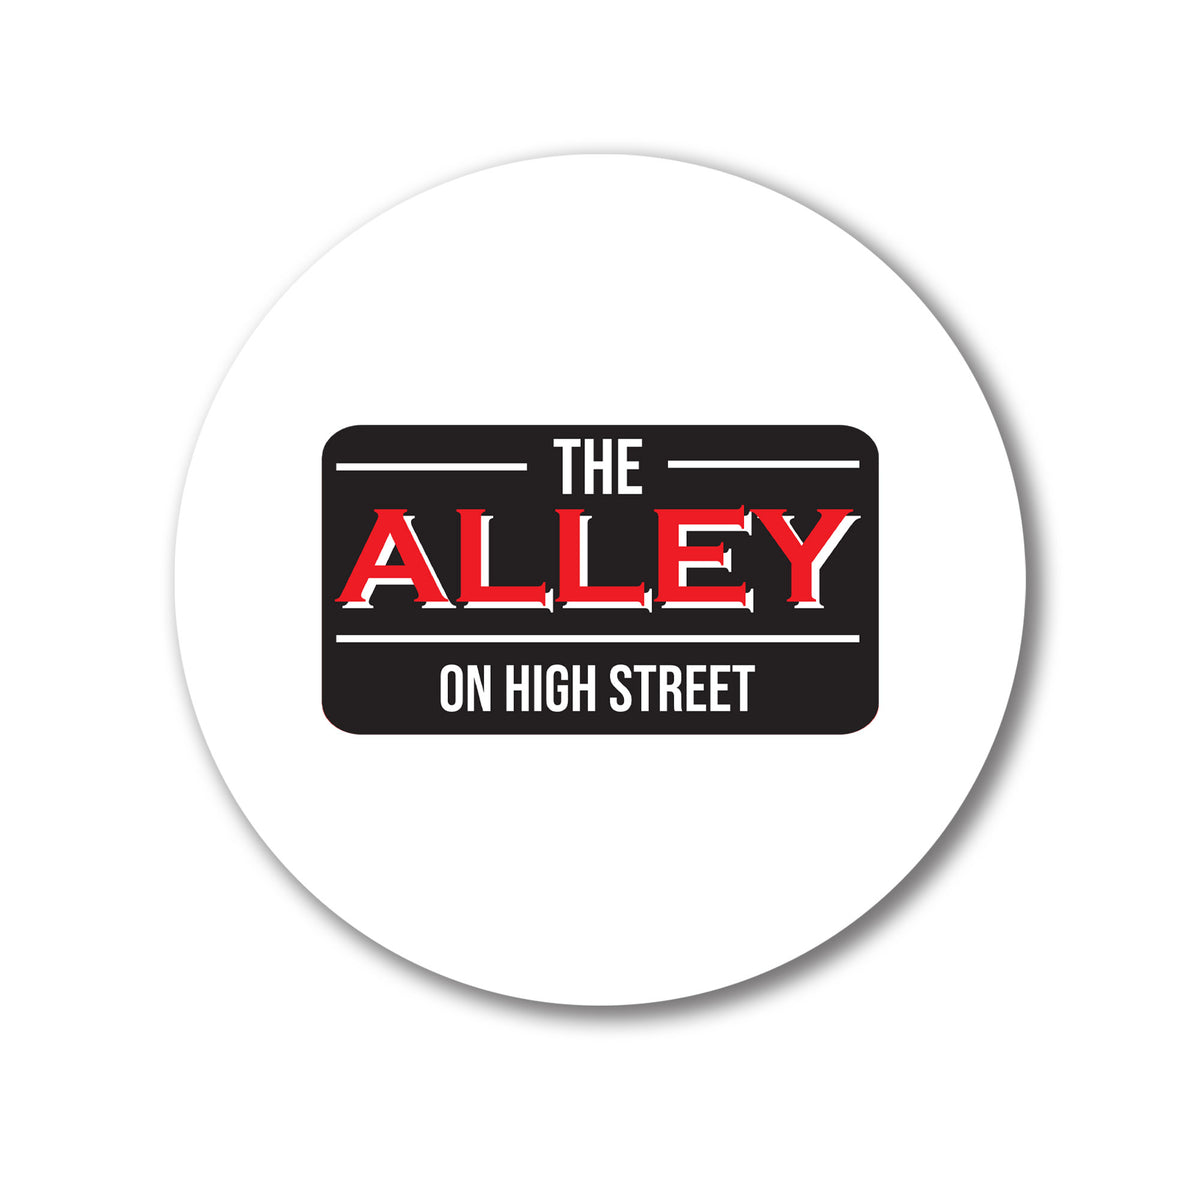 The Alley on High Street We Support PA Coasters